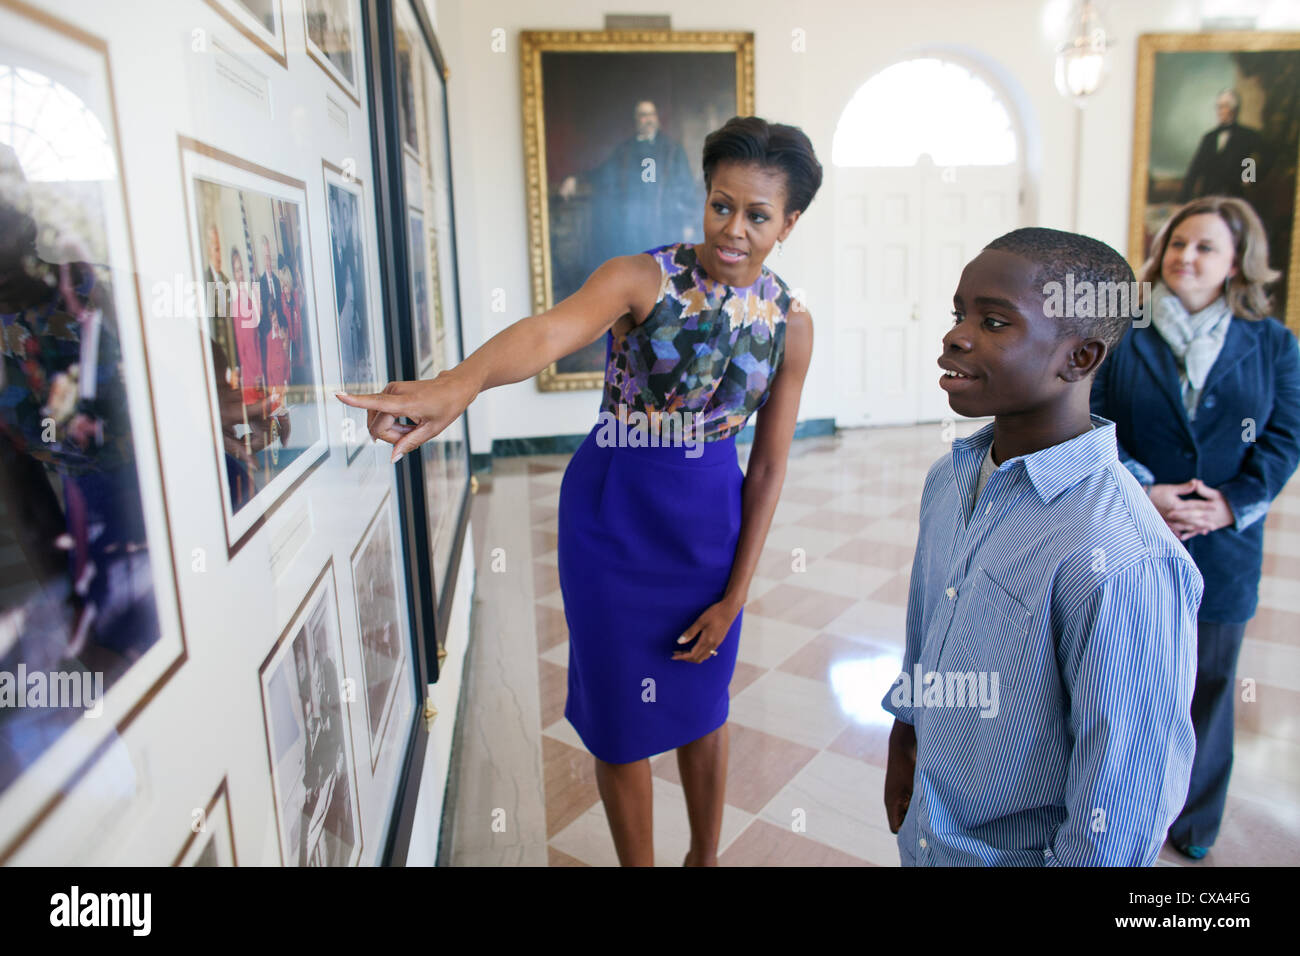 Michelle Obama shows NFL Super Kid James Gale, 11, historical photos from previous administrations. - Stock Image